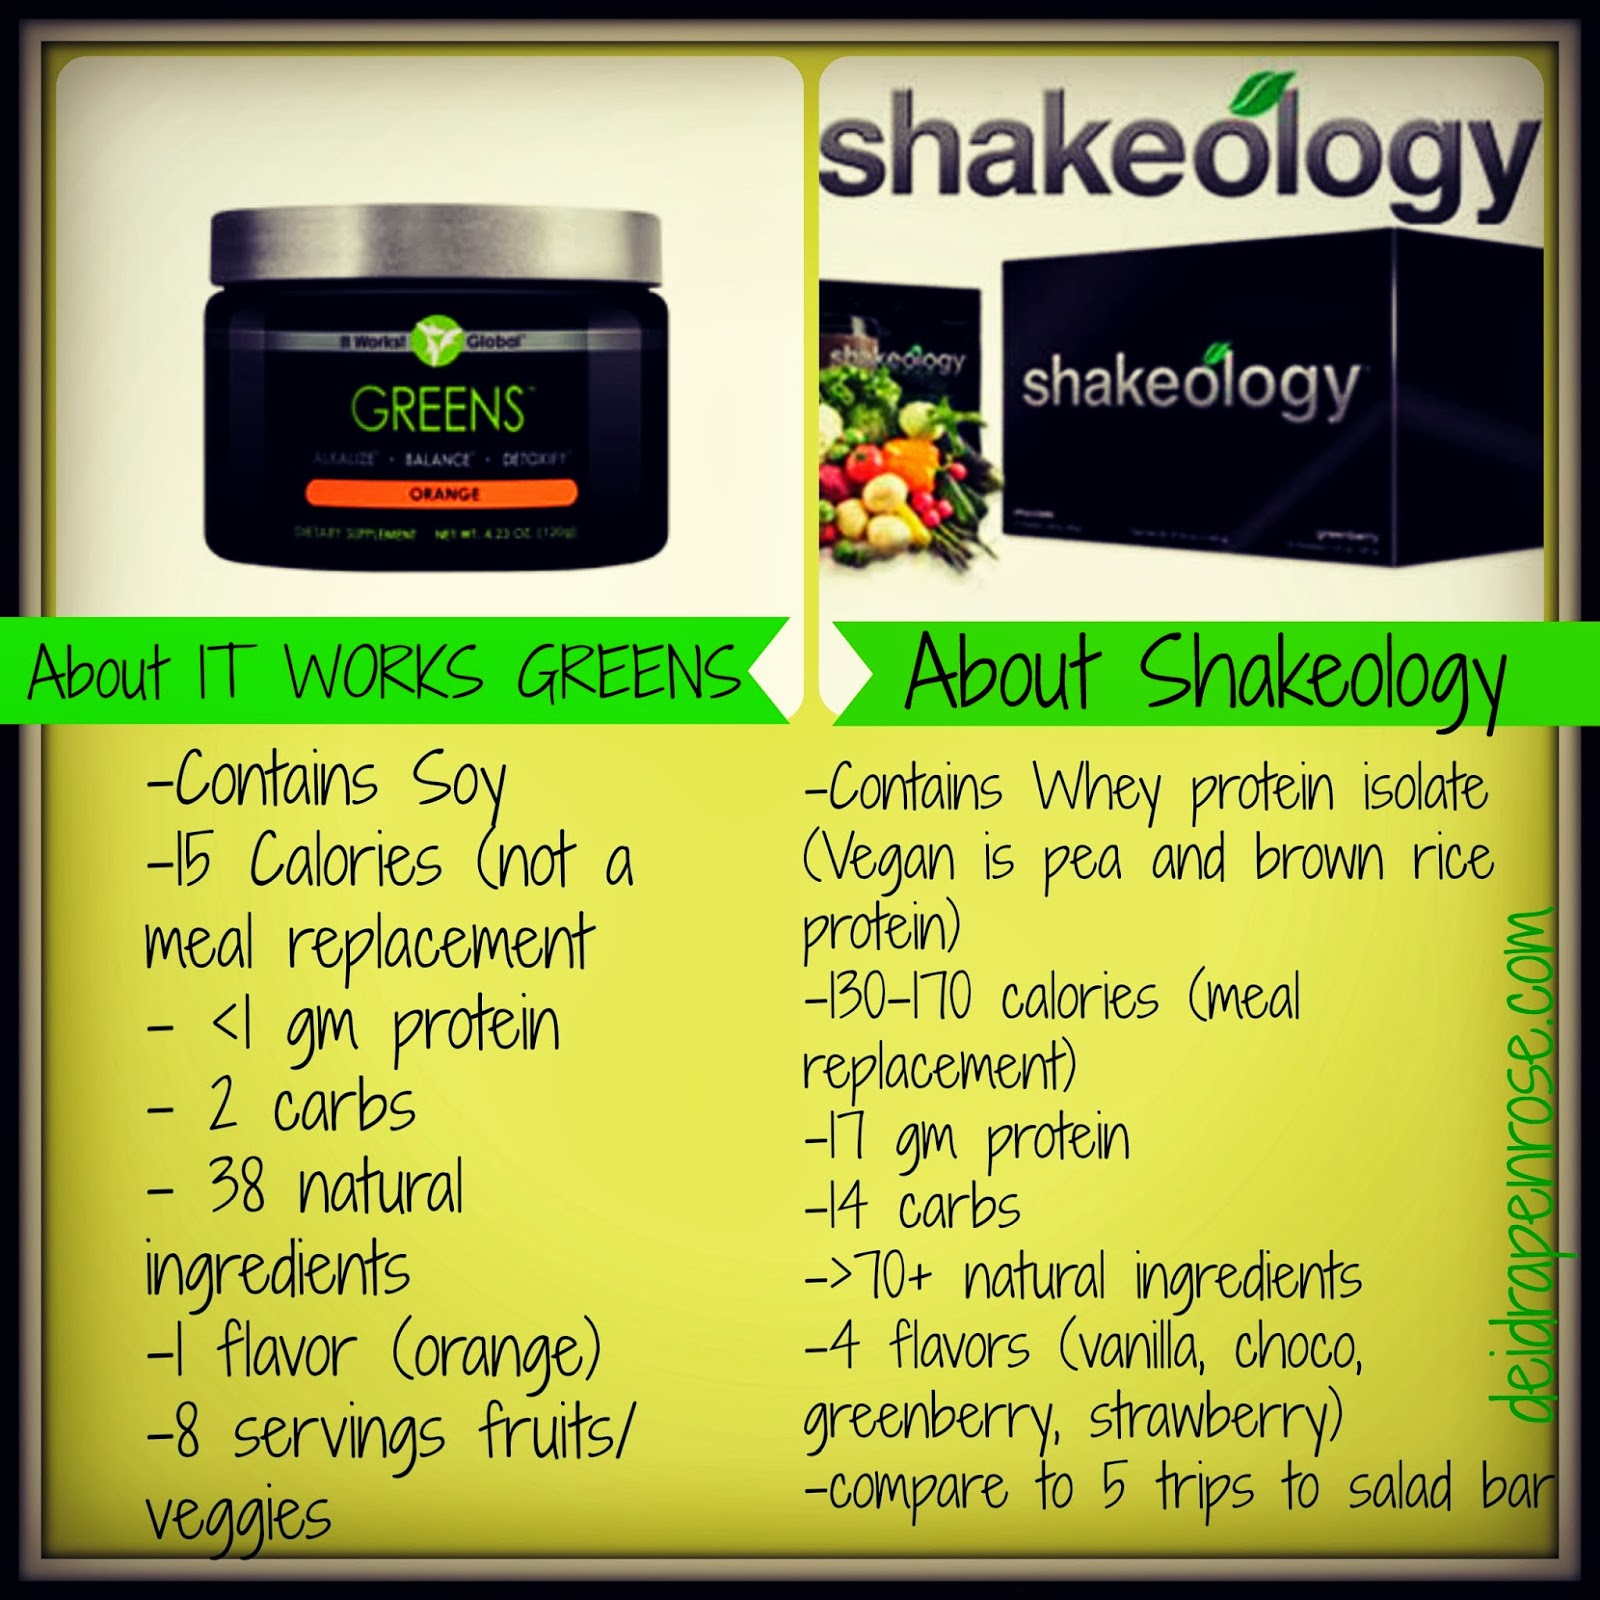 Shakeology, It works greens, healthy eating, protein shakes, clean eating, meal replacements drinks, compare shakeology with greens, gluten free, soy free, weight loss, diet, nutrition, Deidra Penrose, 5 star elite beach body coach